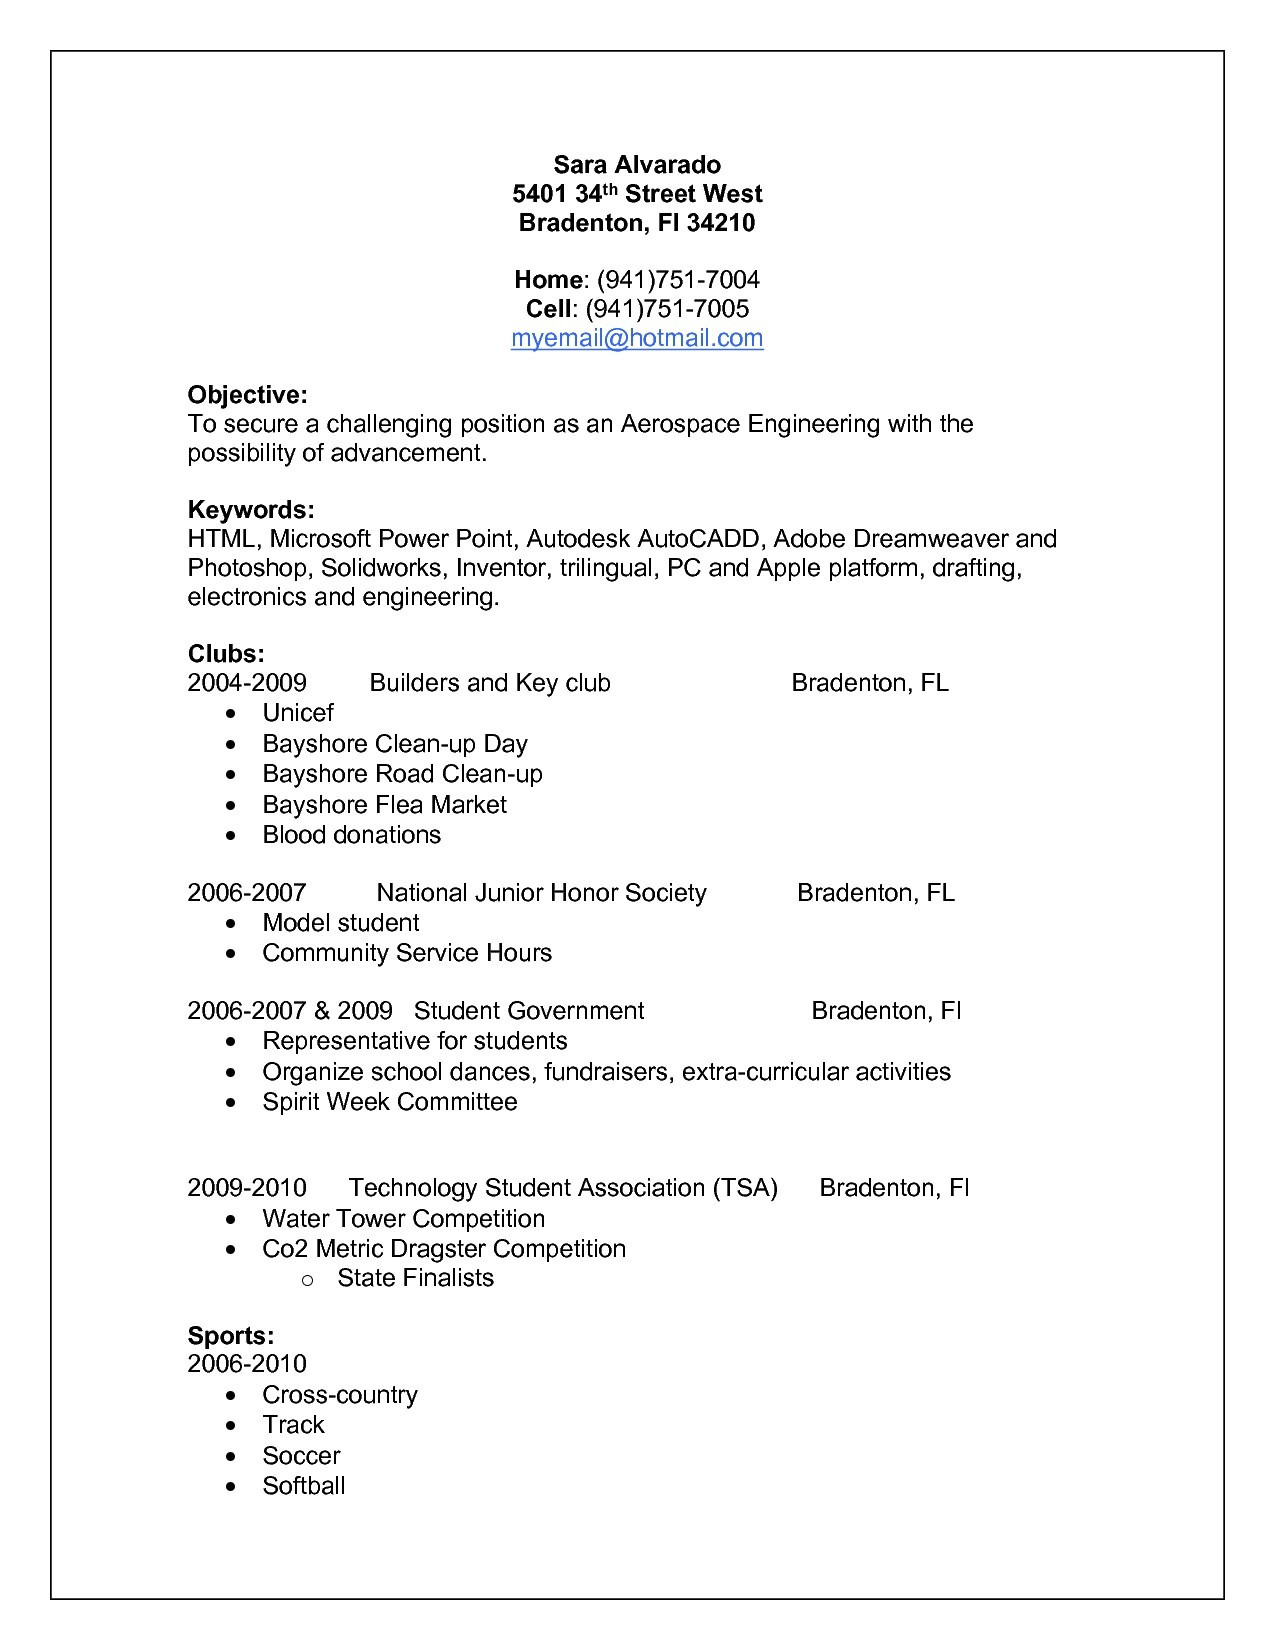 Extracurricular Activities Resume - Extracurricular Activities Resume Template Best Apple Resume